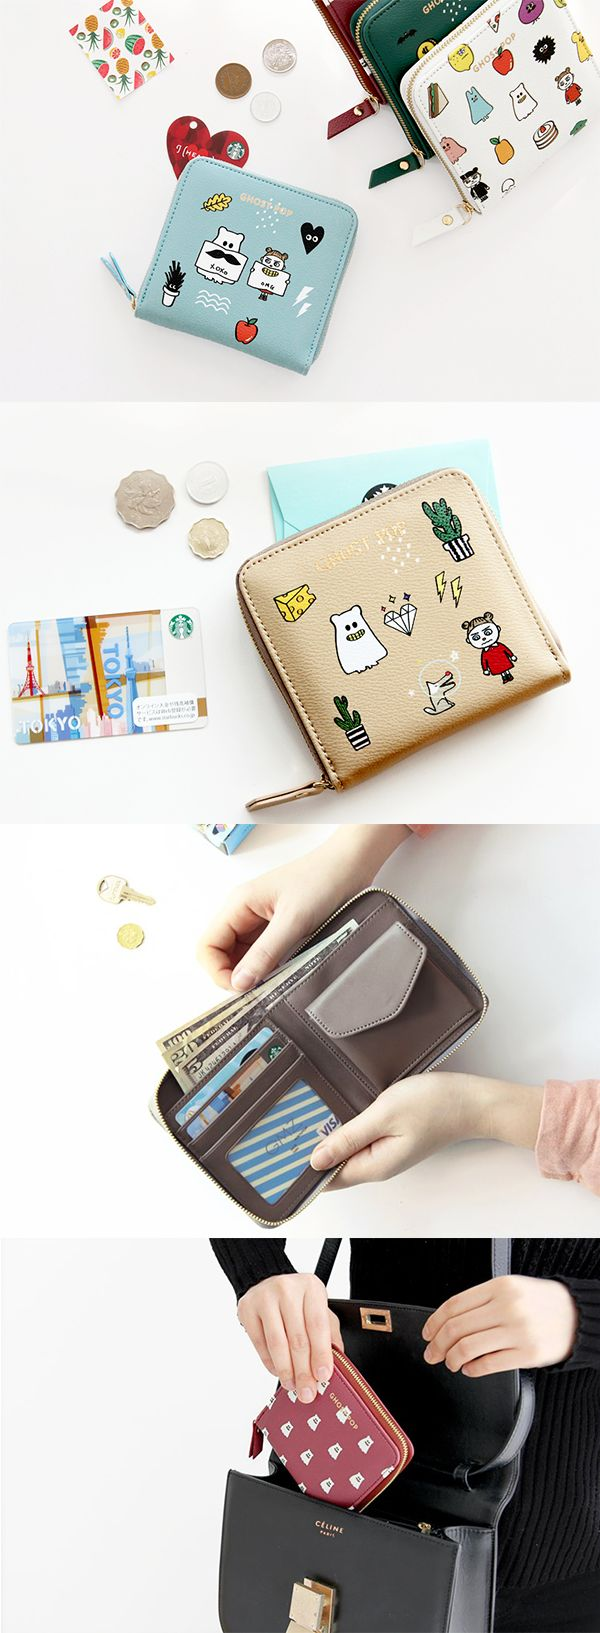 CUTE!! An adorable little compact wallet with a zipper and pretty patterns to boot!